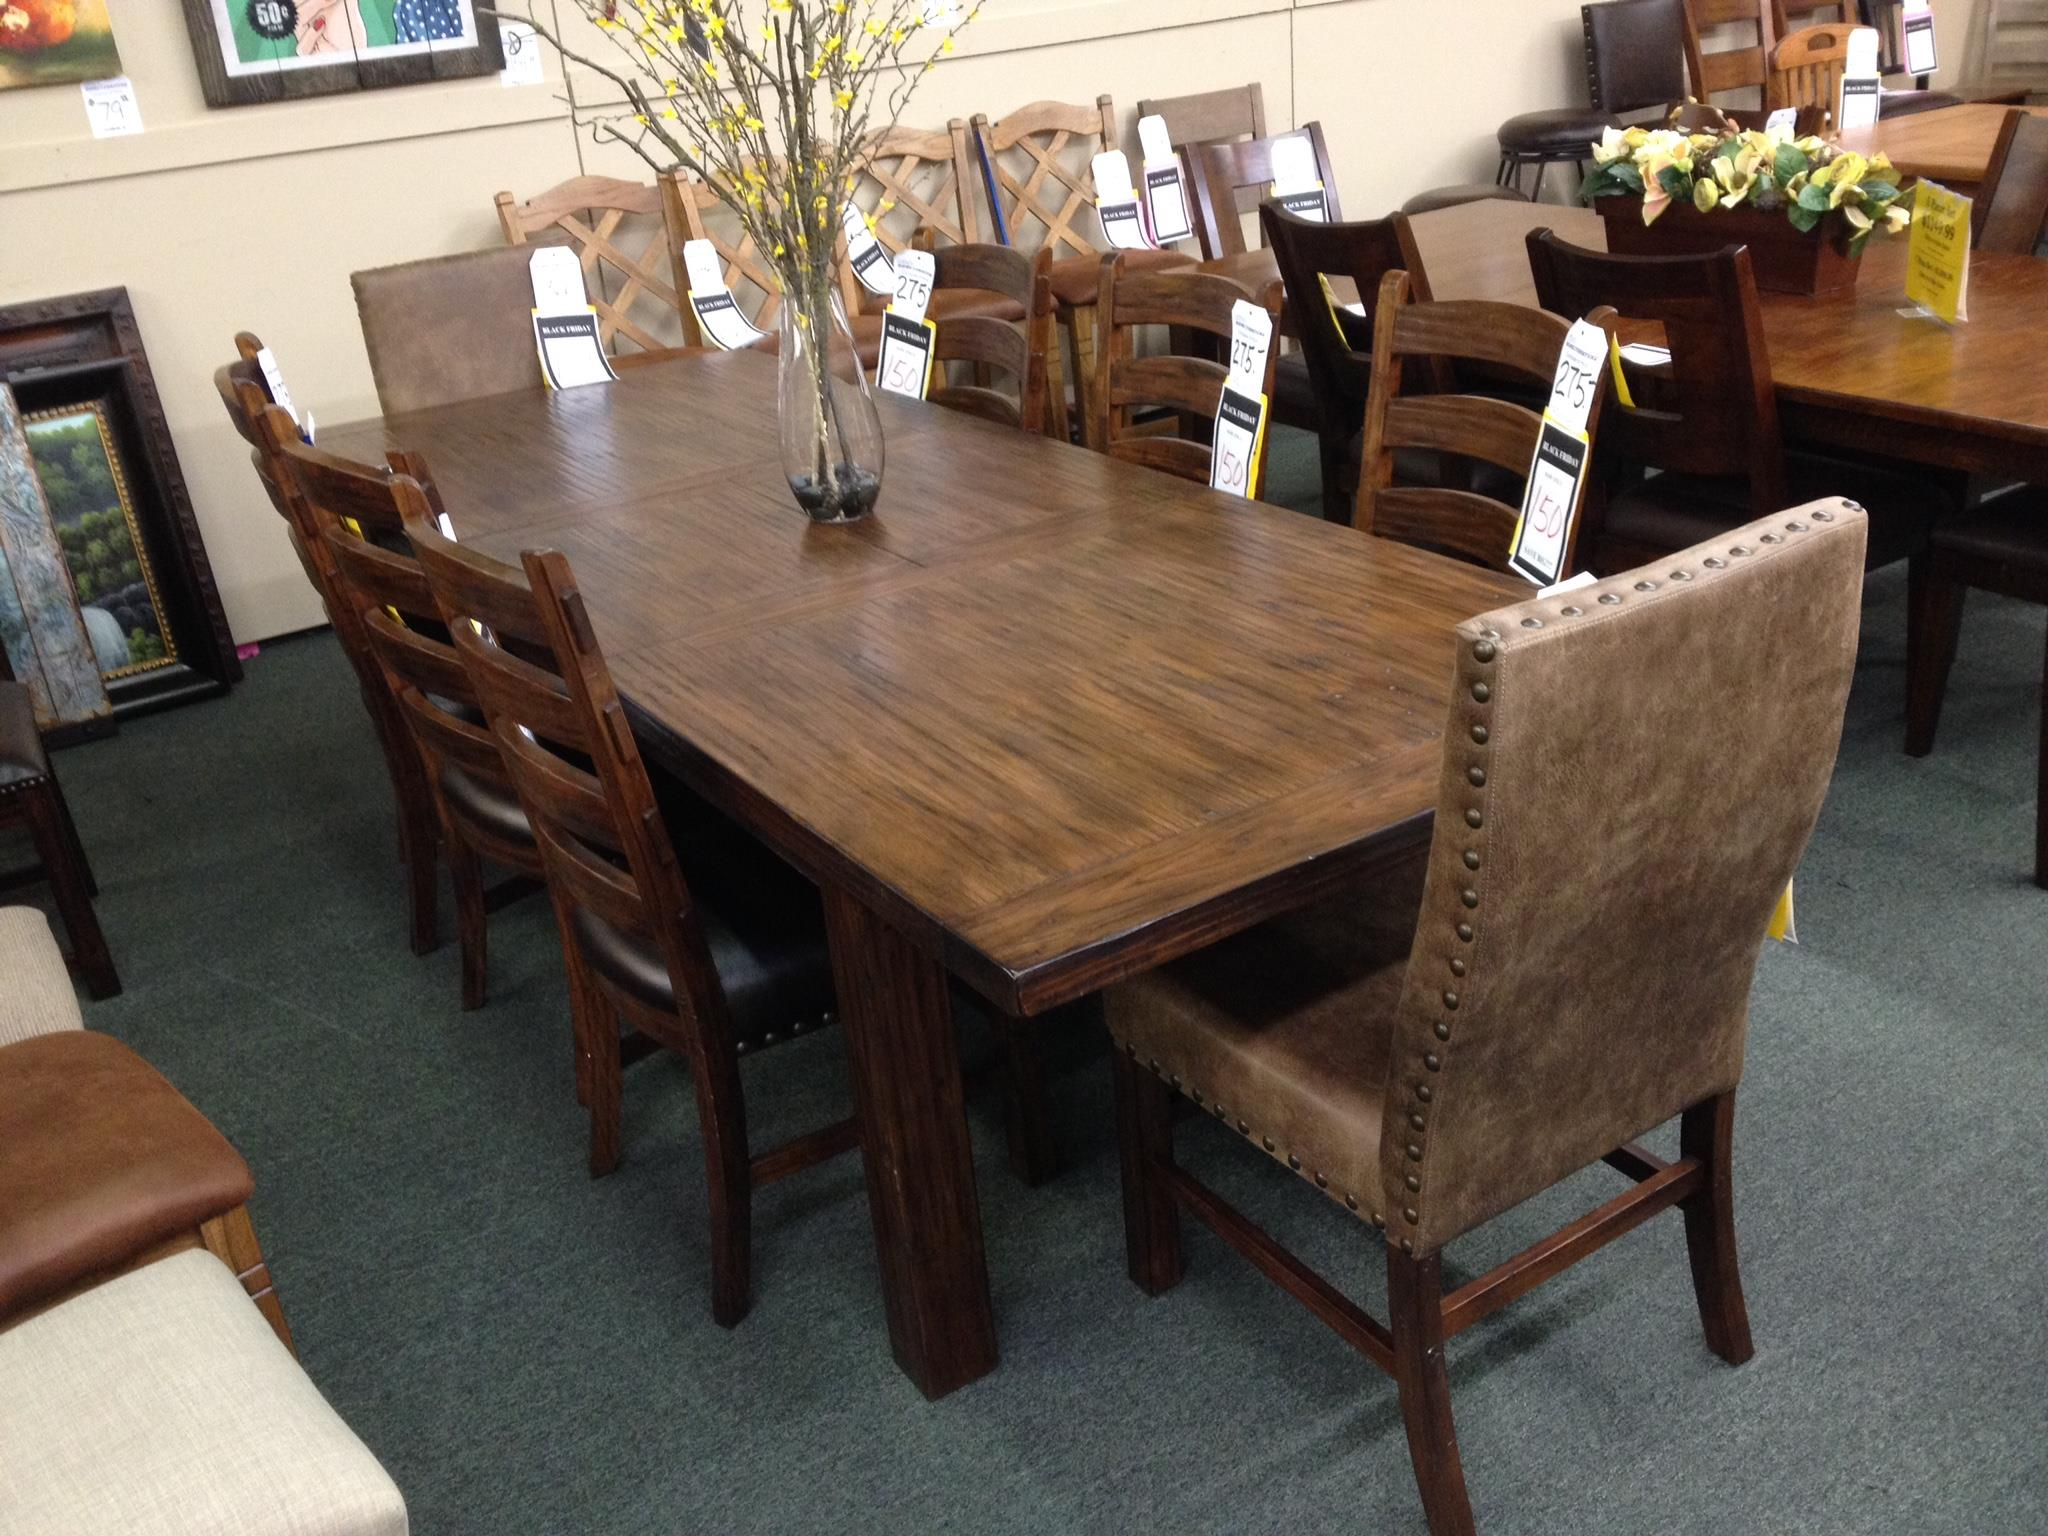 5 PC Table and Chair Set